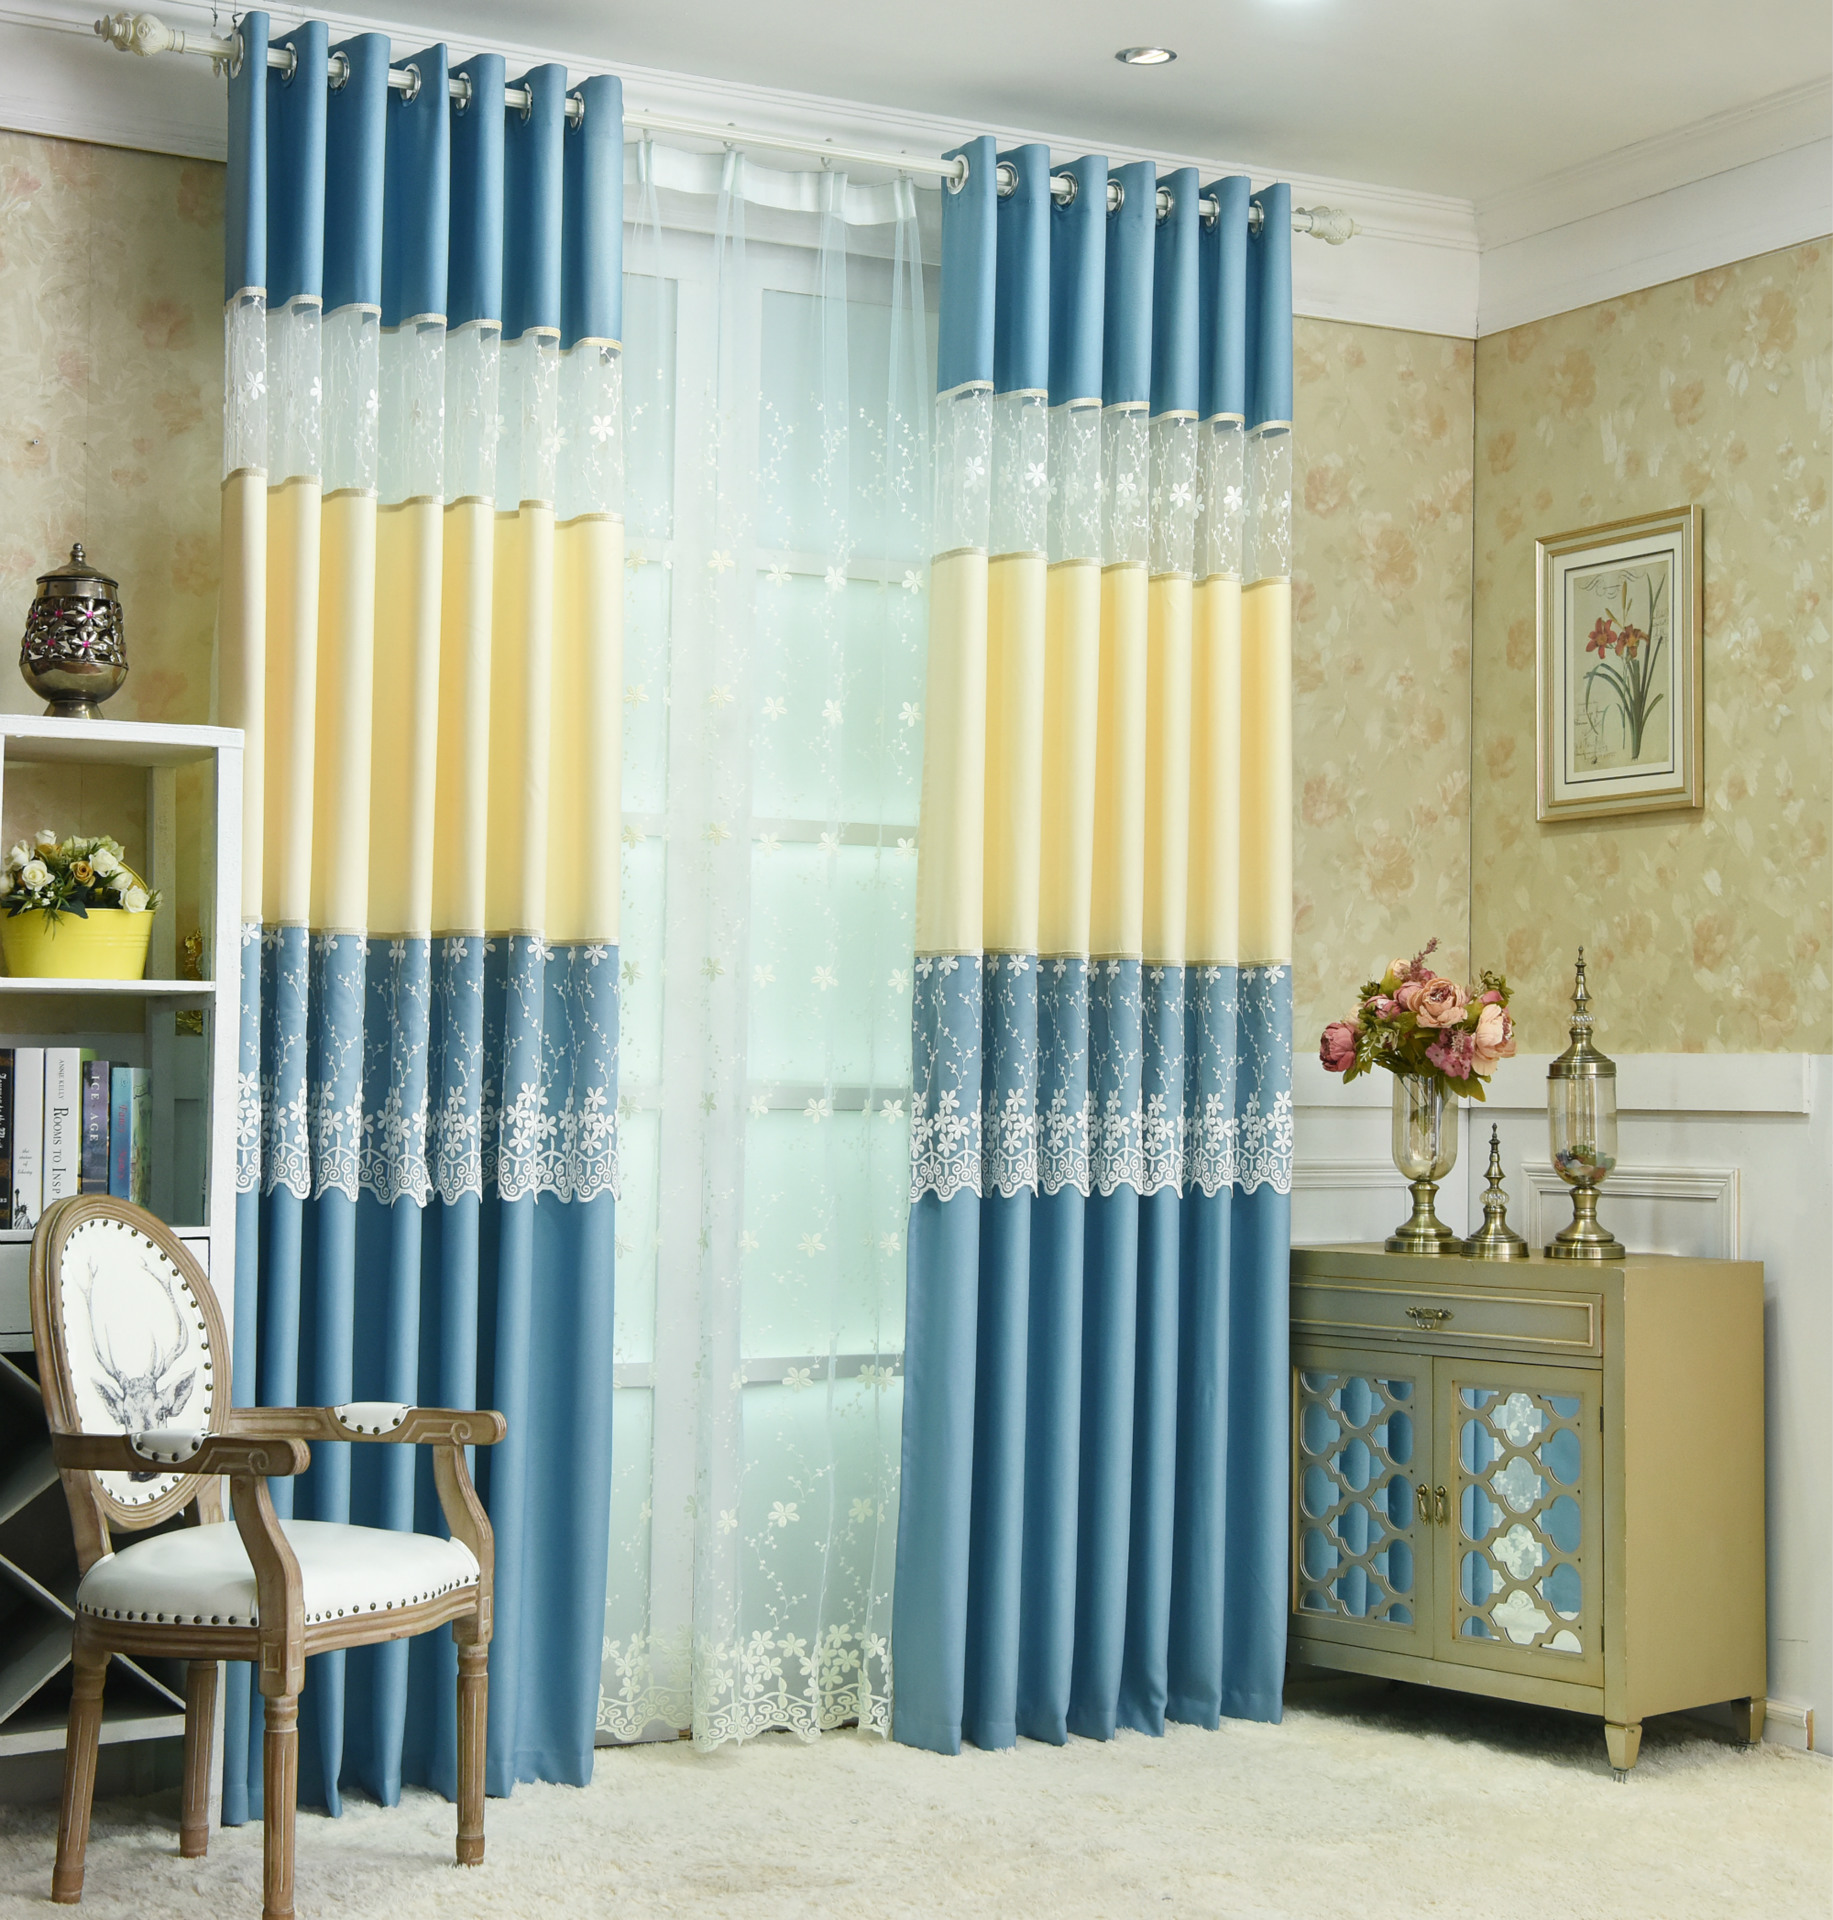 Korean Rustic Style Curtains For Living Room Curtains